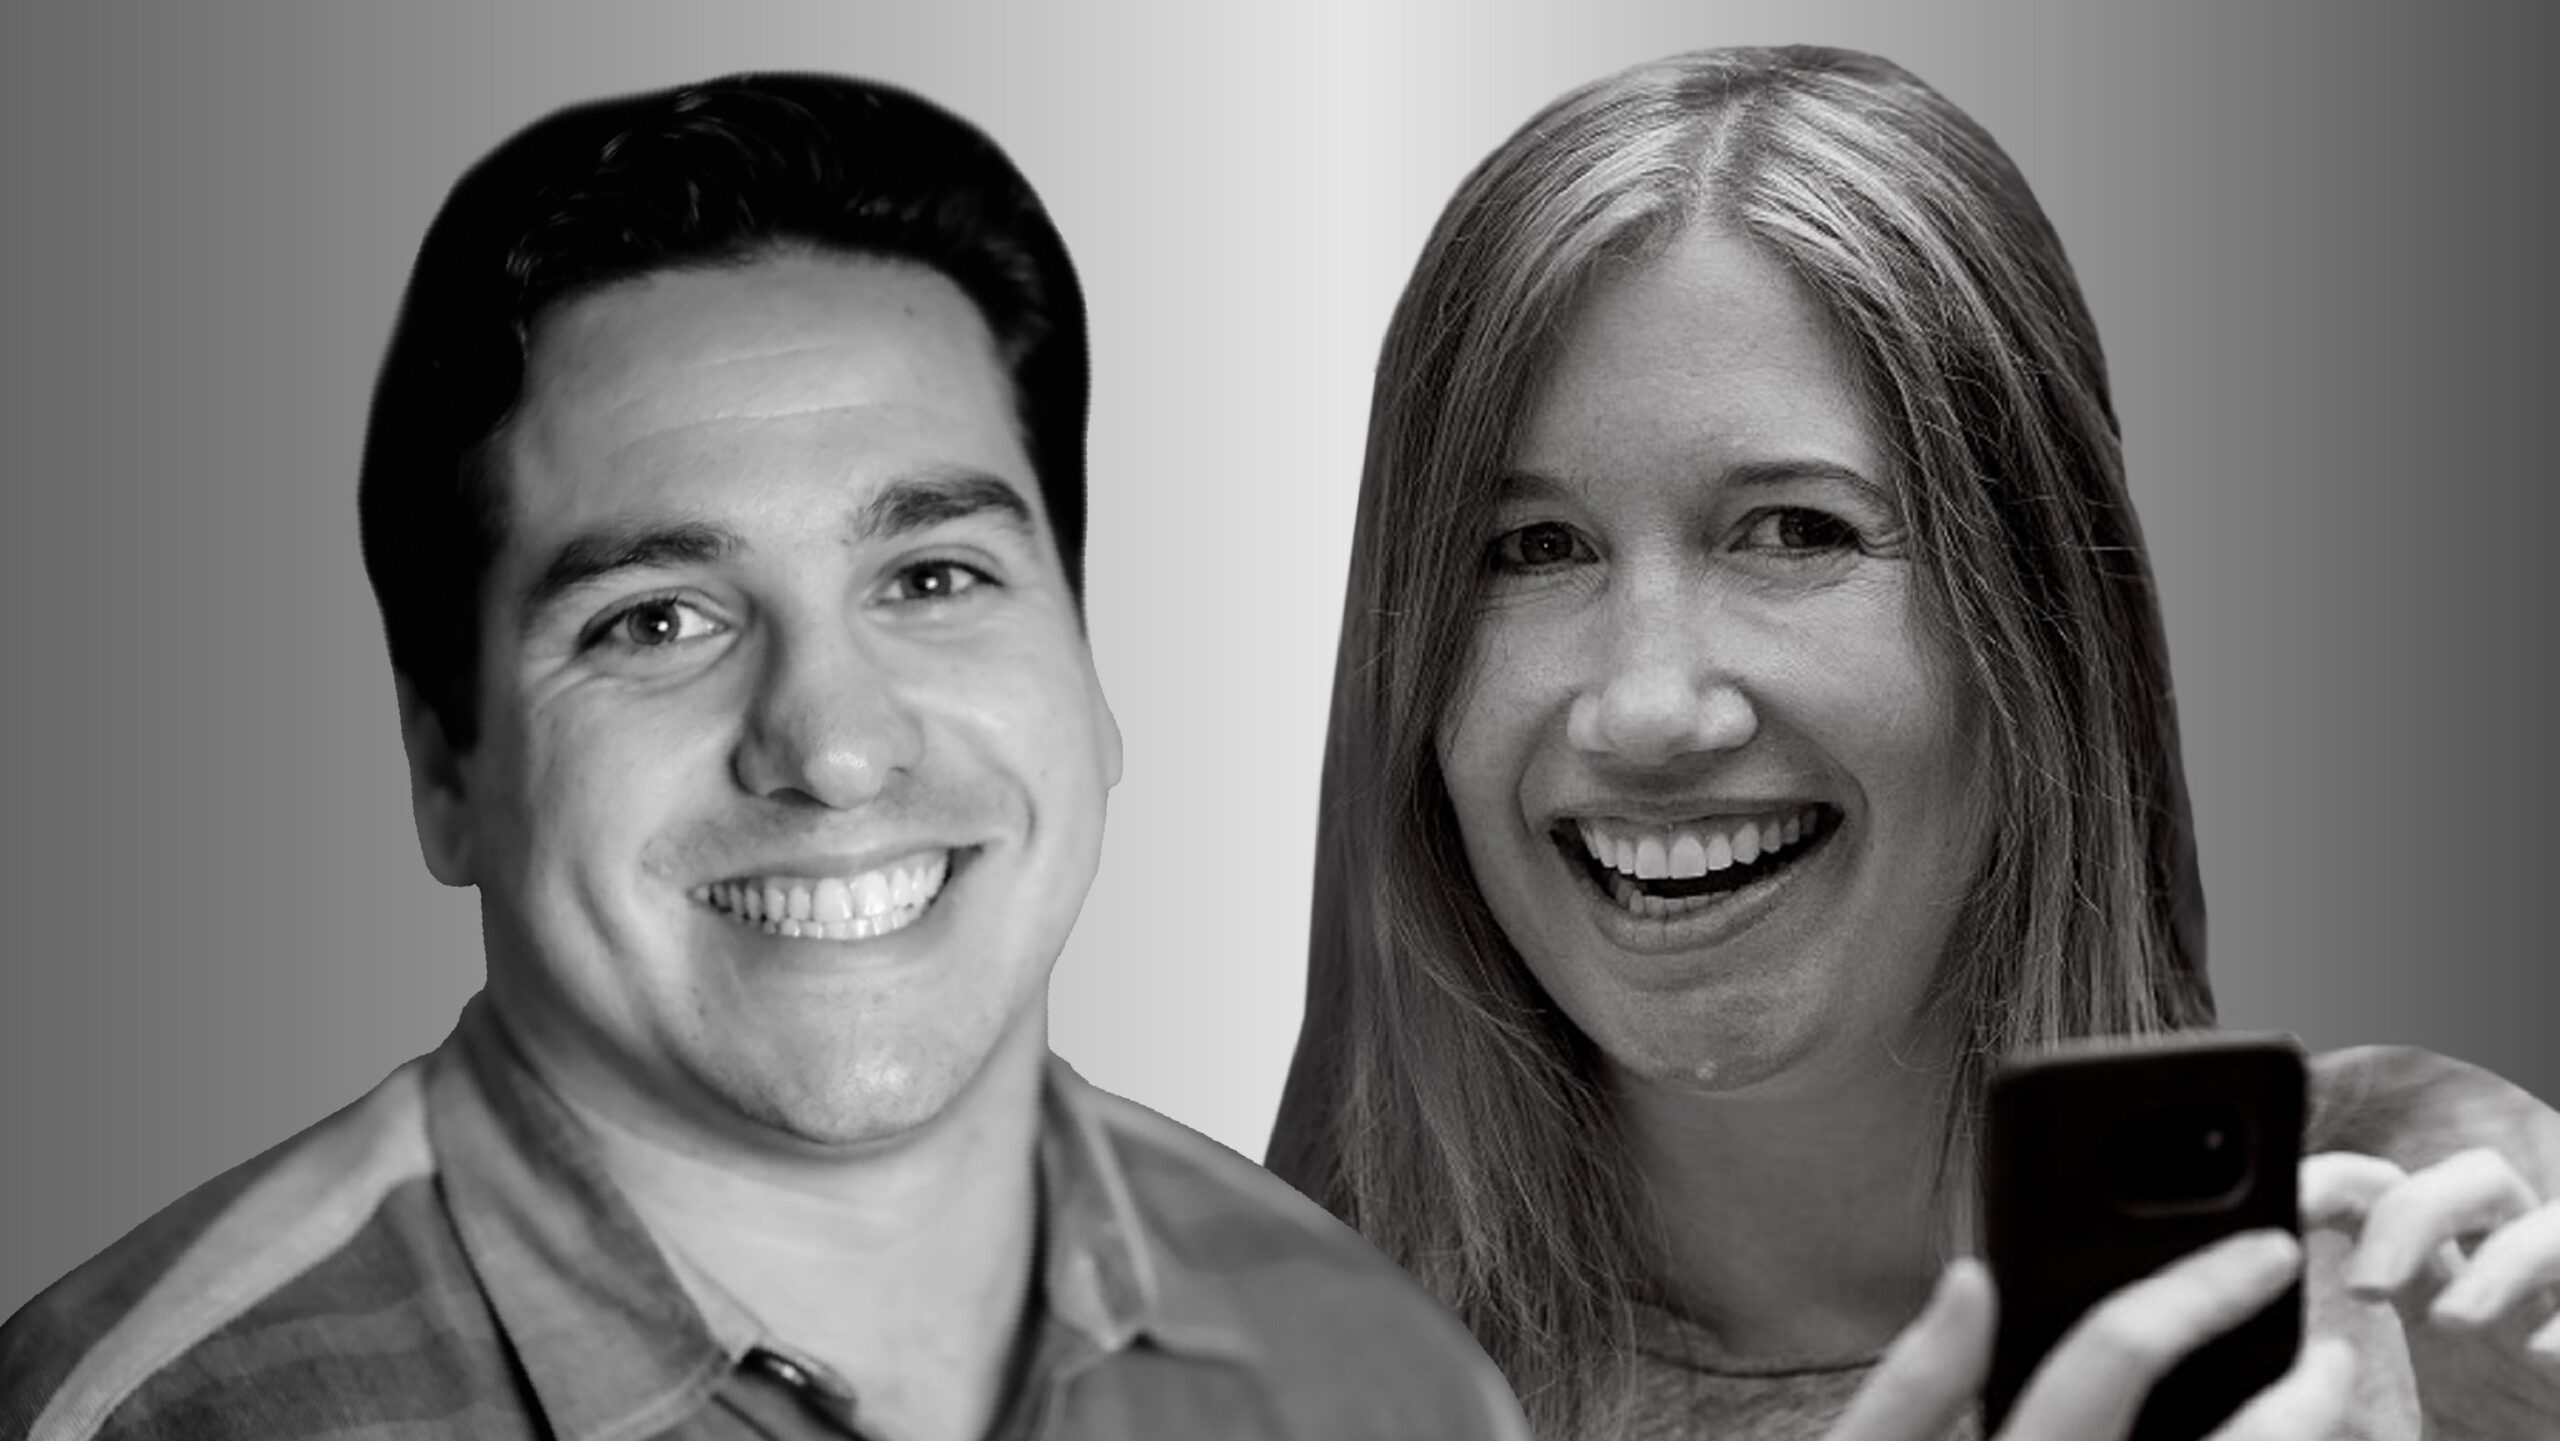 Two people side by side, Matt Brodsky on the left and Jaime Teevan on the right,in black and white smile and look forward. Teevanis holding a cell phone.